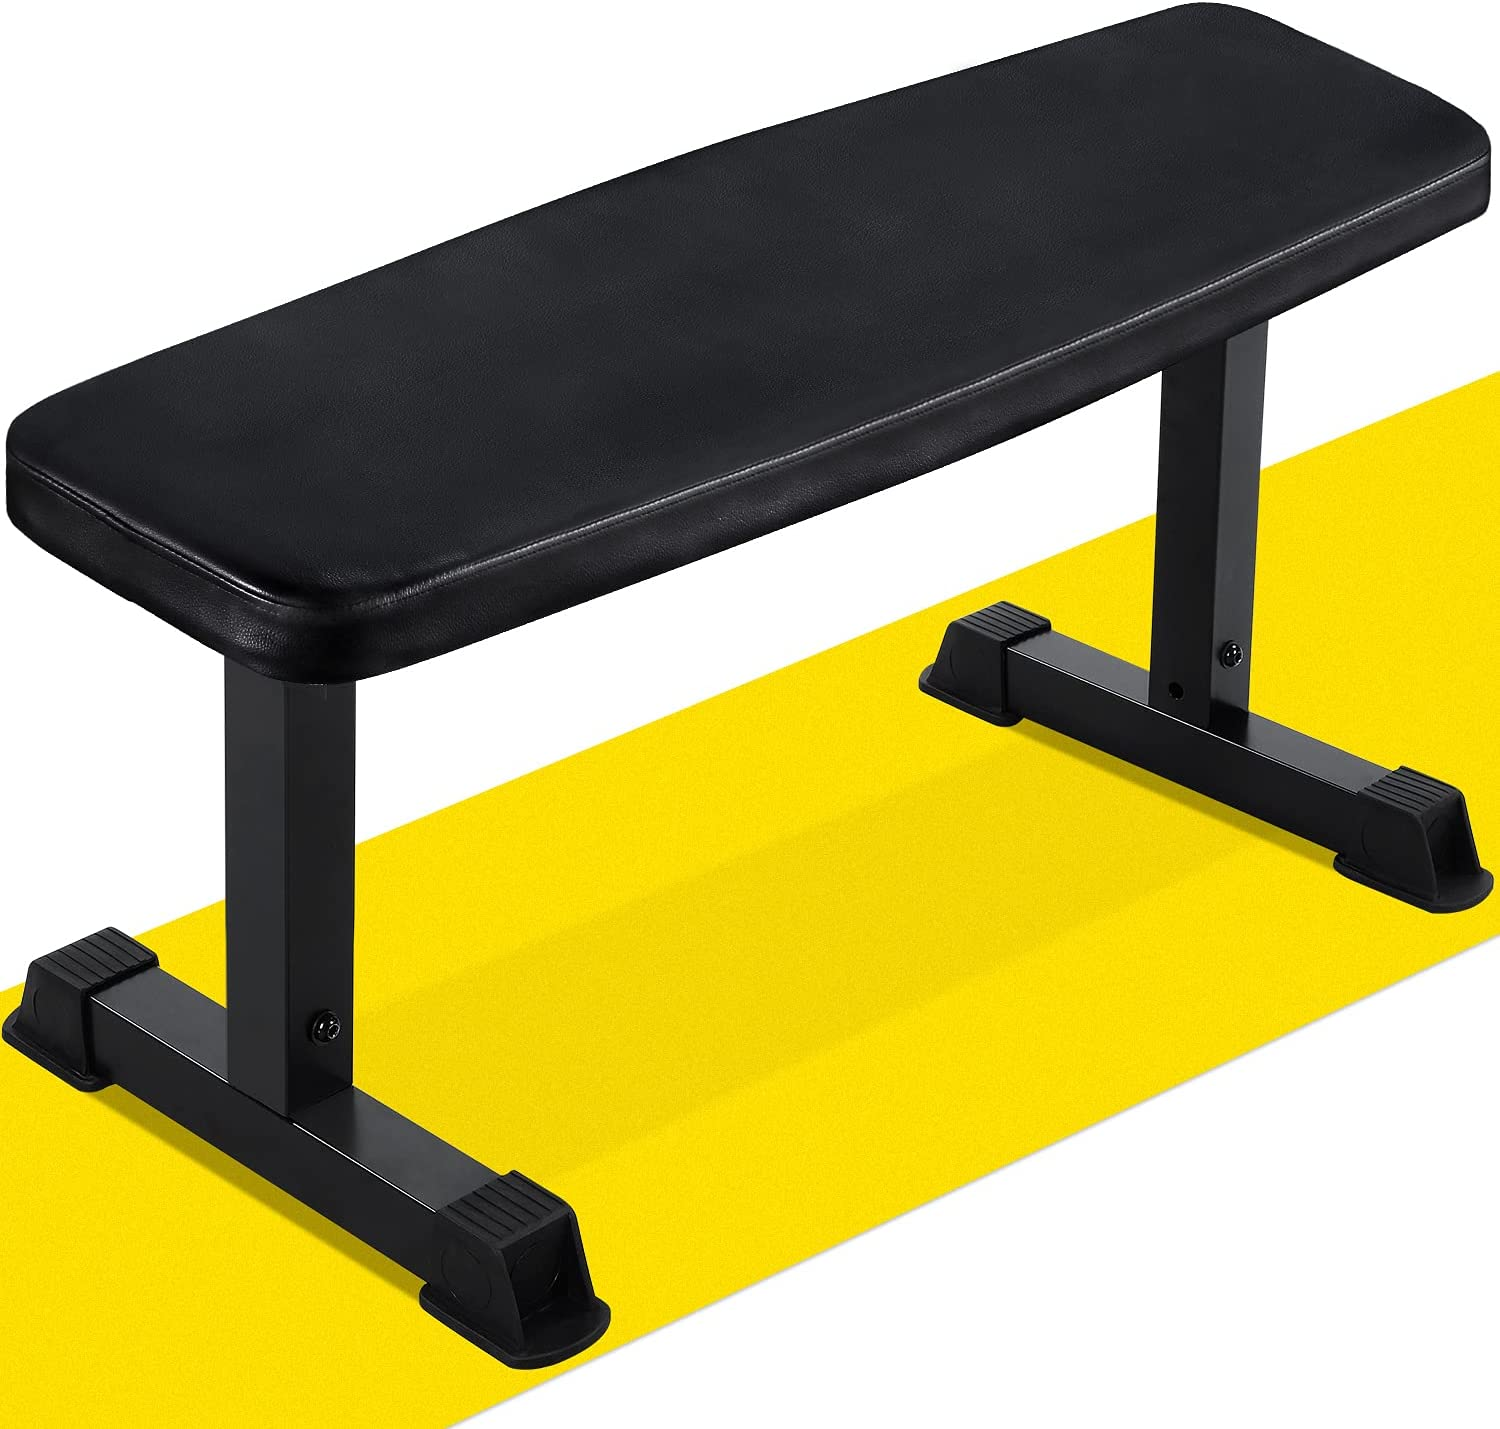 Flat Outstanding Weight Bench Capacity Workout 500lbs Fitness supreme Exercise